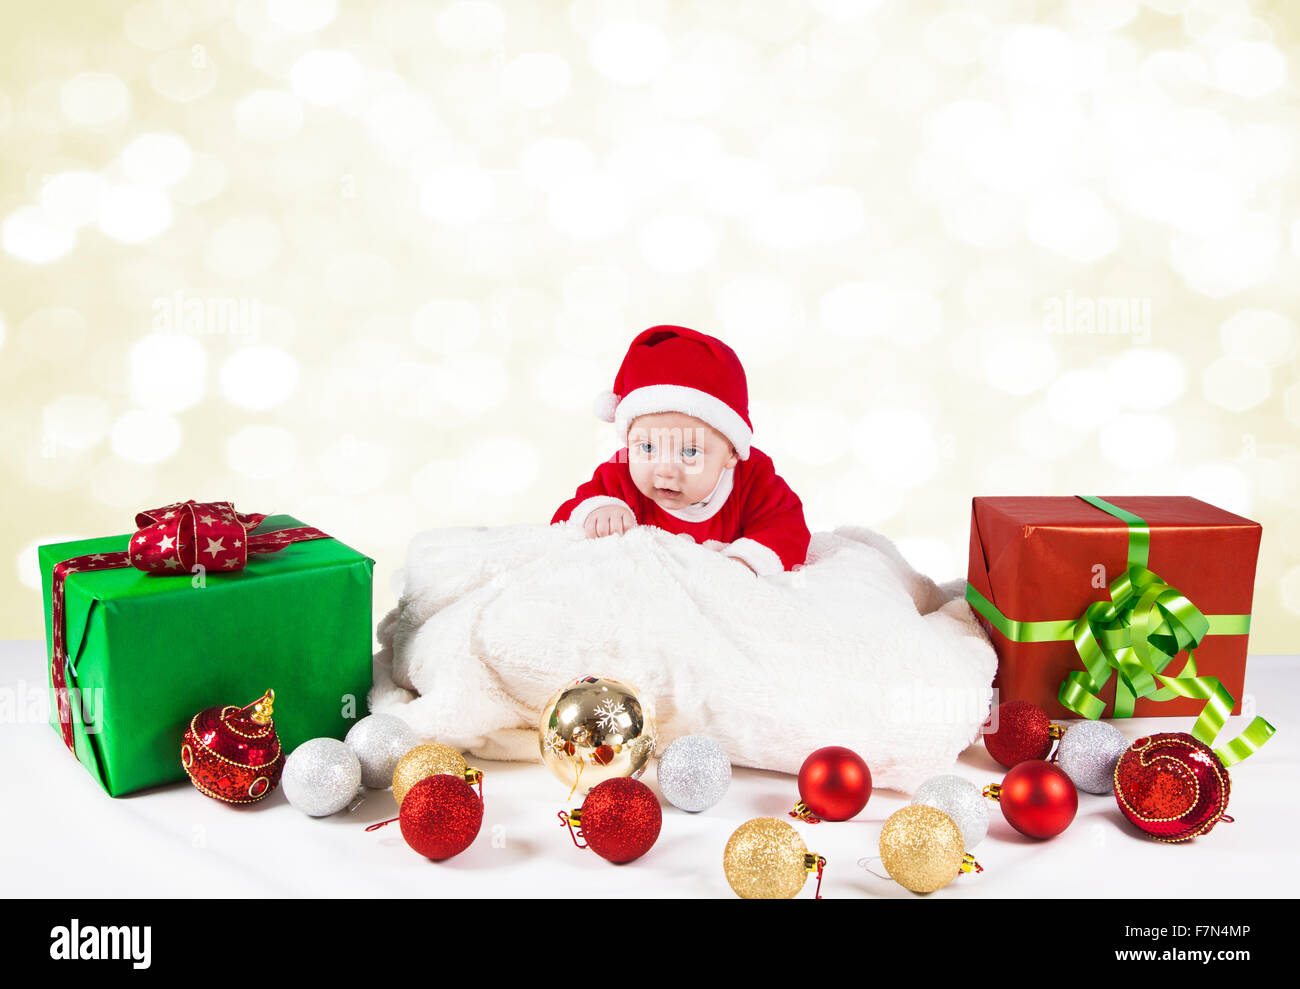 02281d39010 5 months old baby dressed as Santa for Christmas Stock Photo ...